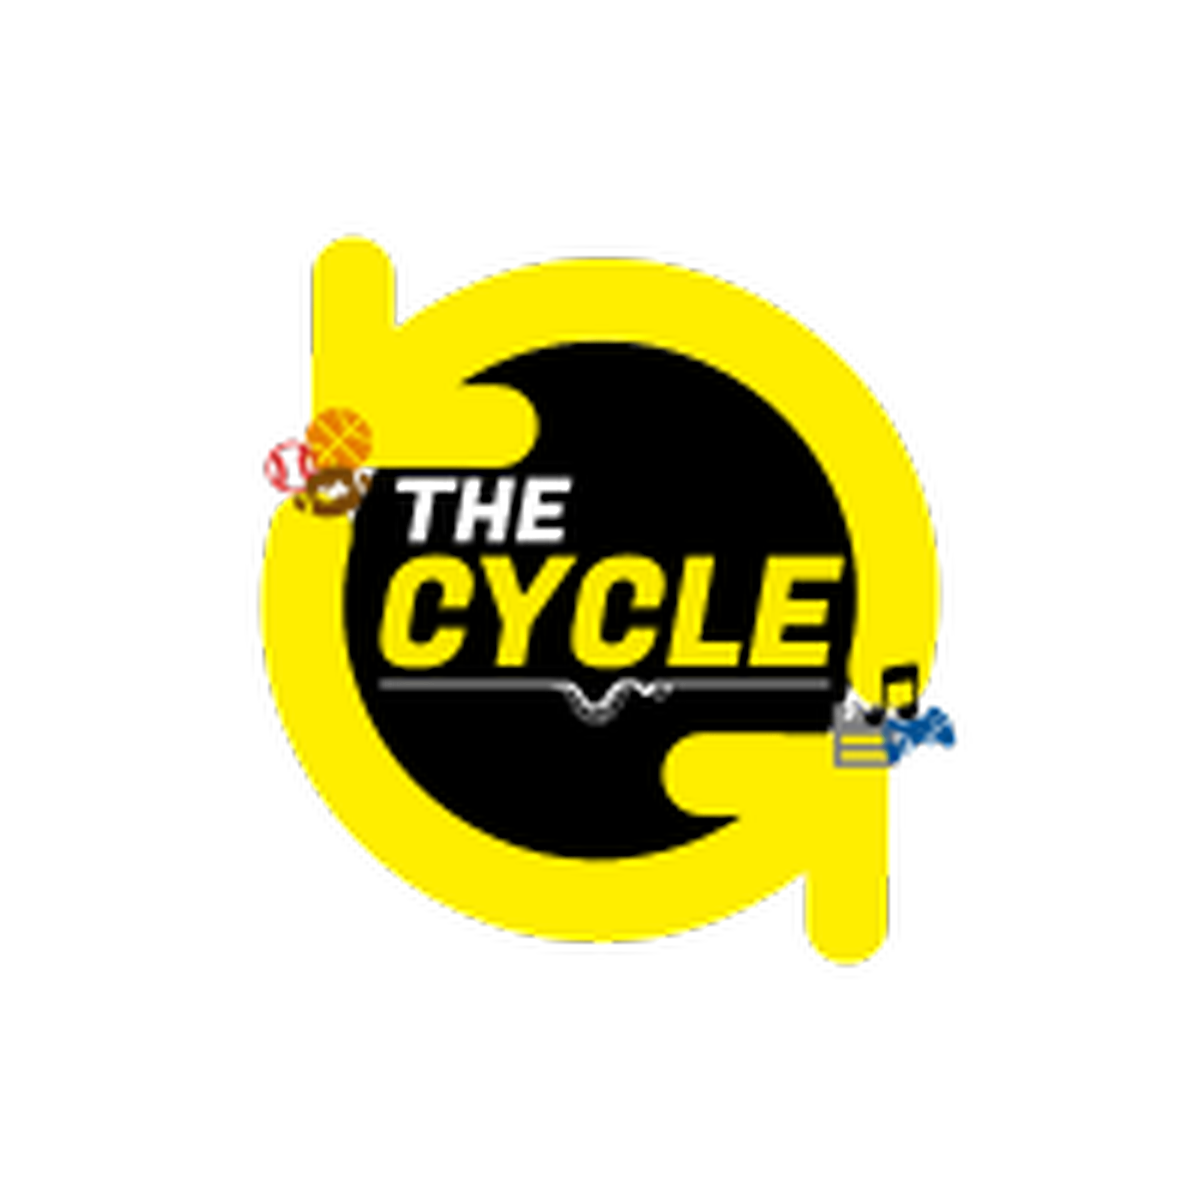 Partner Announcement - The Cycle